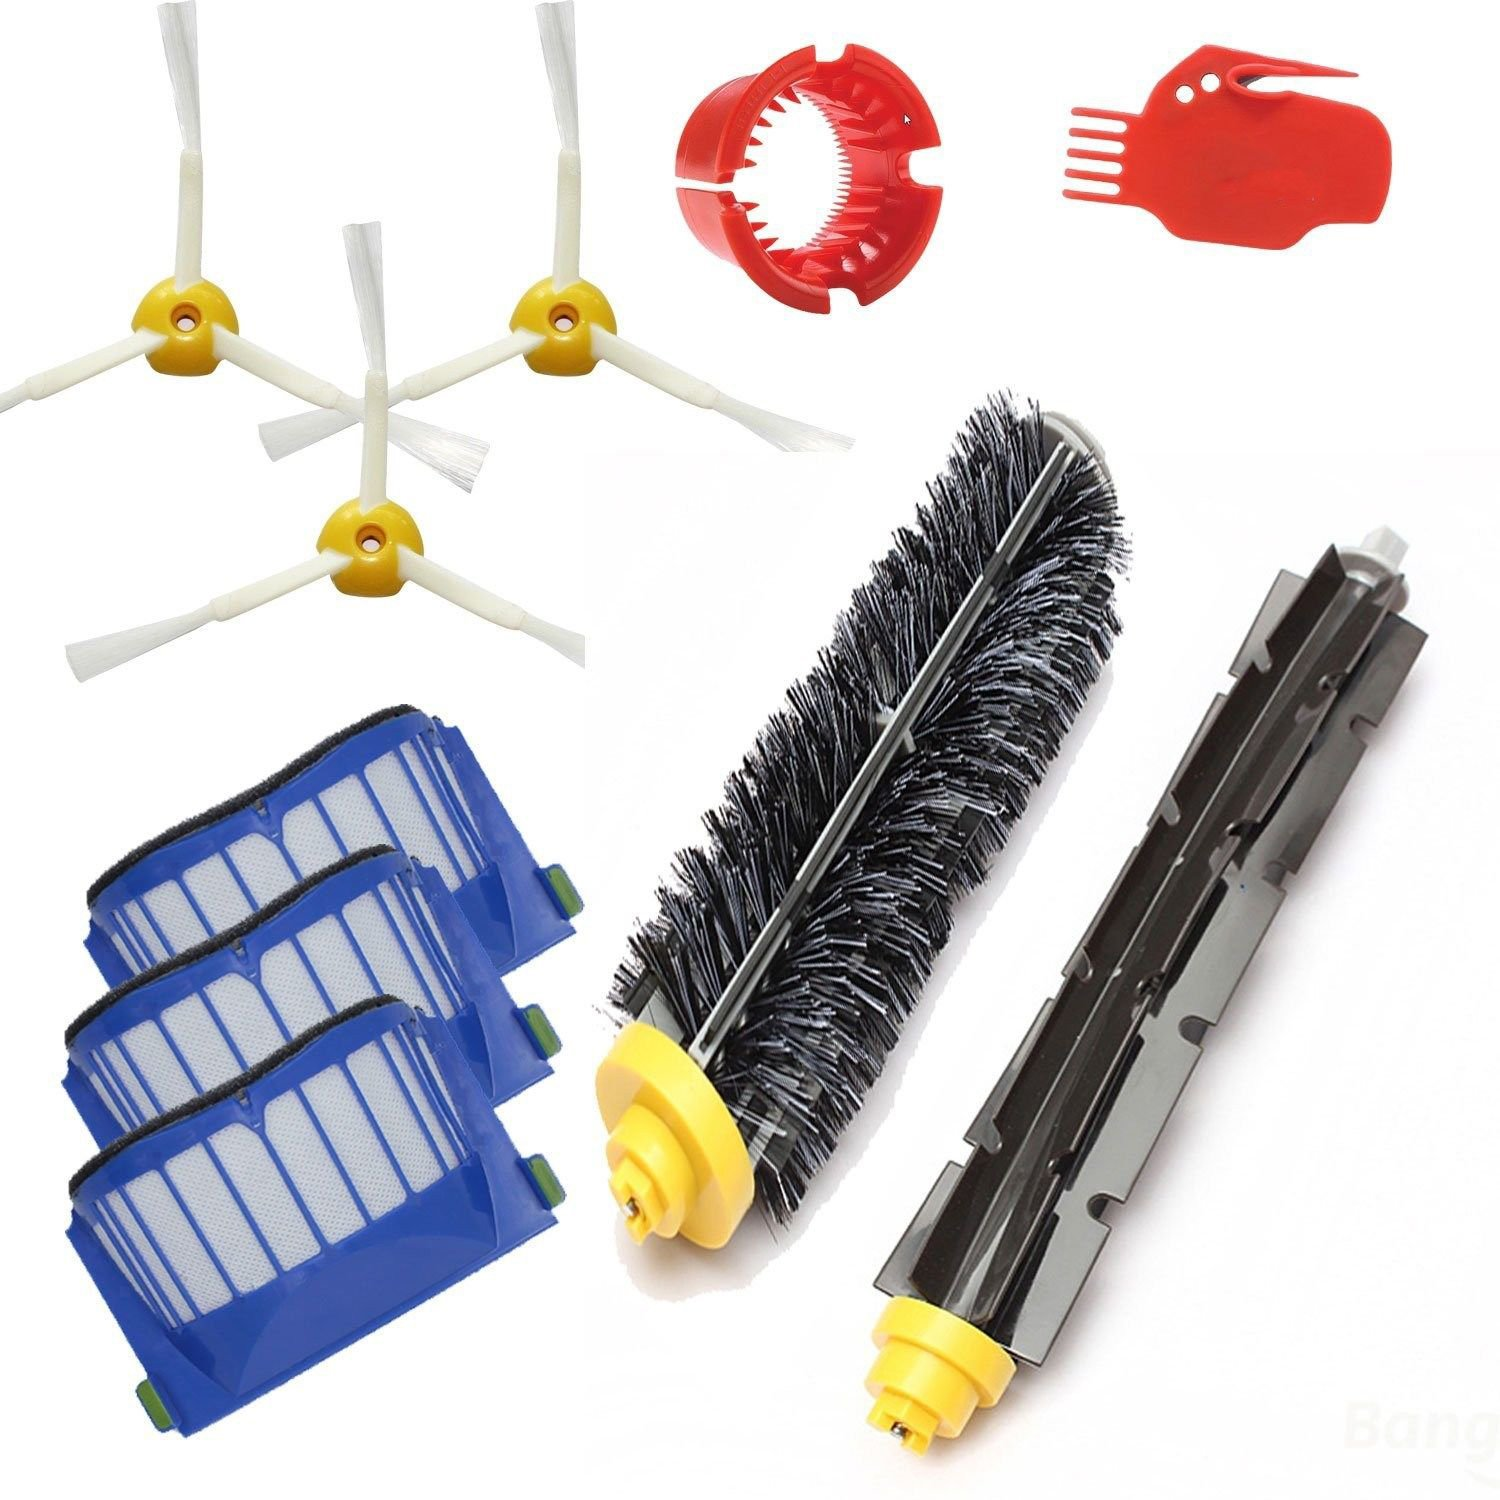 Amyehouse Replacement Parts Kit Bristle Brush & Flexible Beater Brush & Aero Vac Filter & Armed-3 Side Brush for iRobot Roomba 600 Series 595 610 614 620 630 645 650 655 660 671 680 690 Vacuum